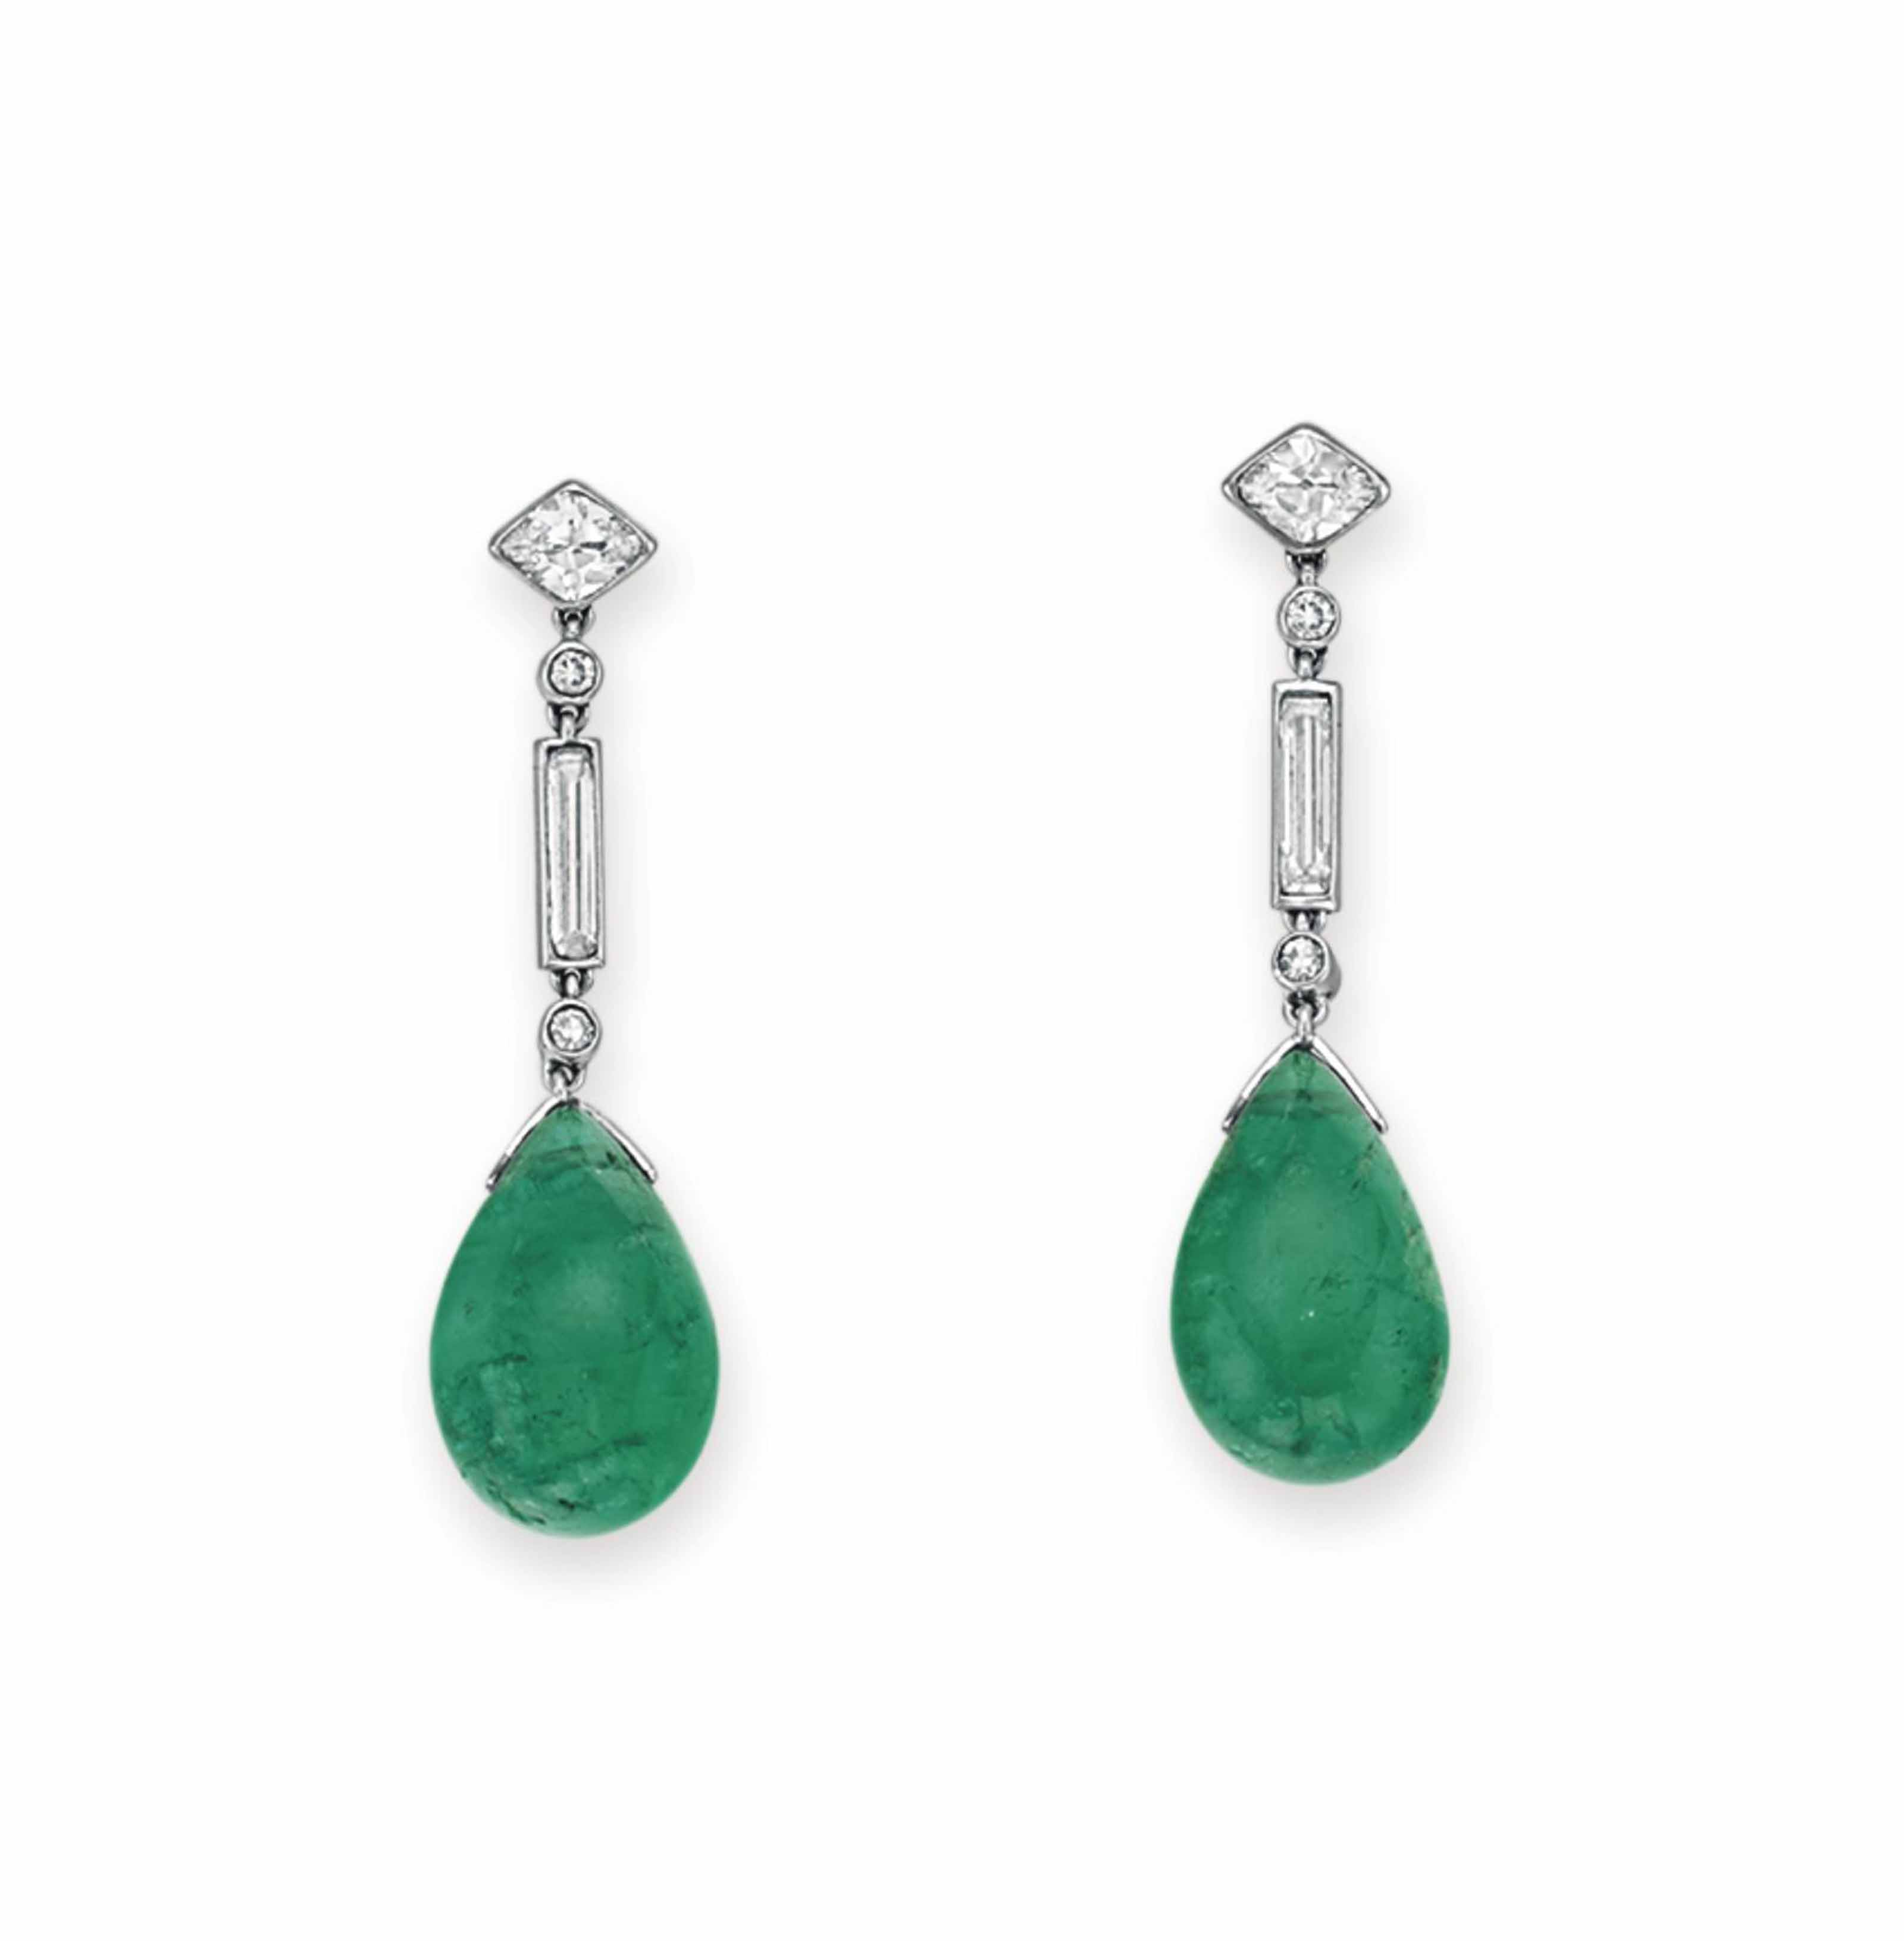 A PAIR OF ART DECO EMERALD AND